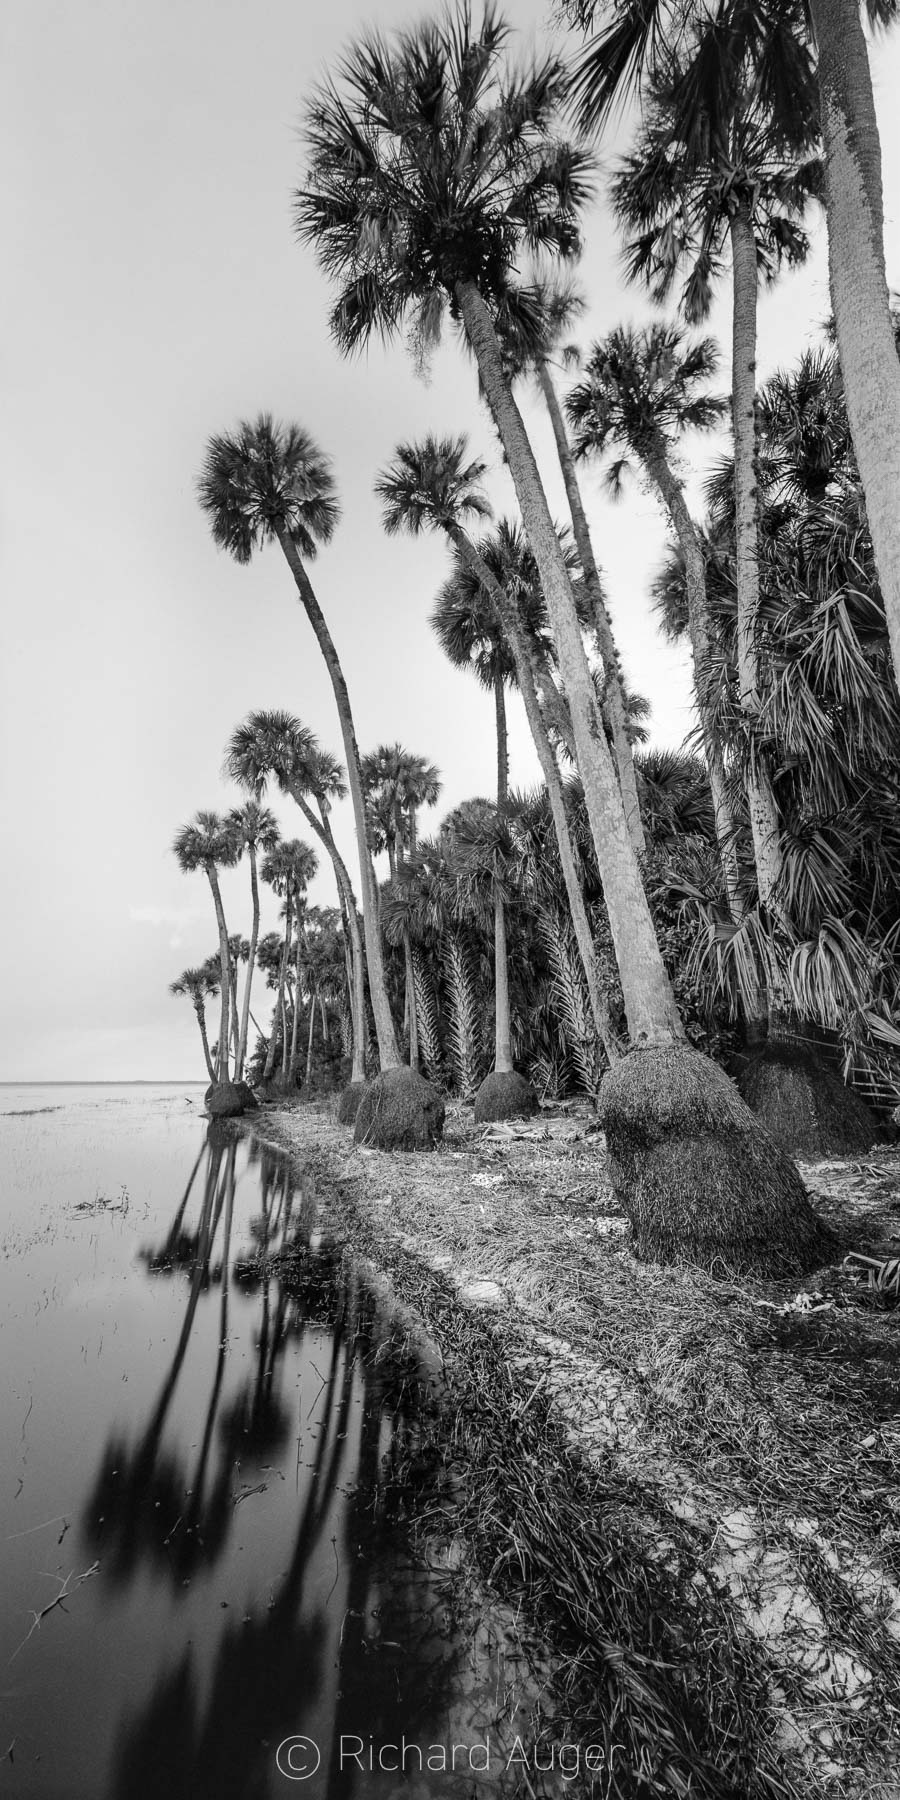 St Johns River, Florida, Swamp, Lake, Sabal Palm Trees, Fog, Black and White, Stillness, Vertical Panorama